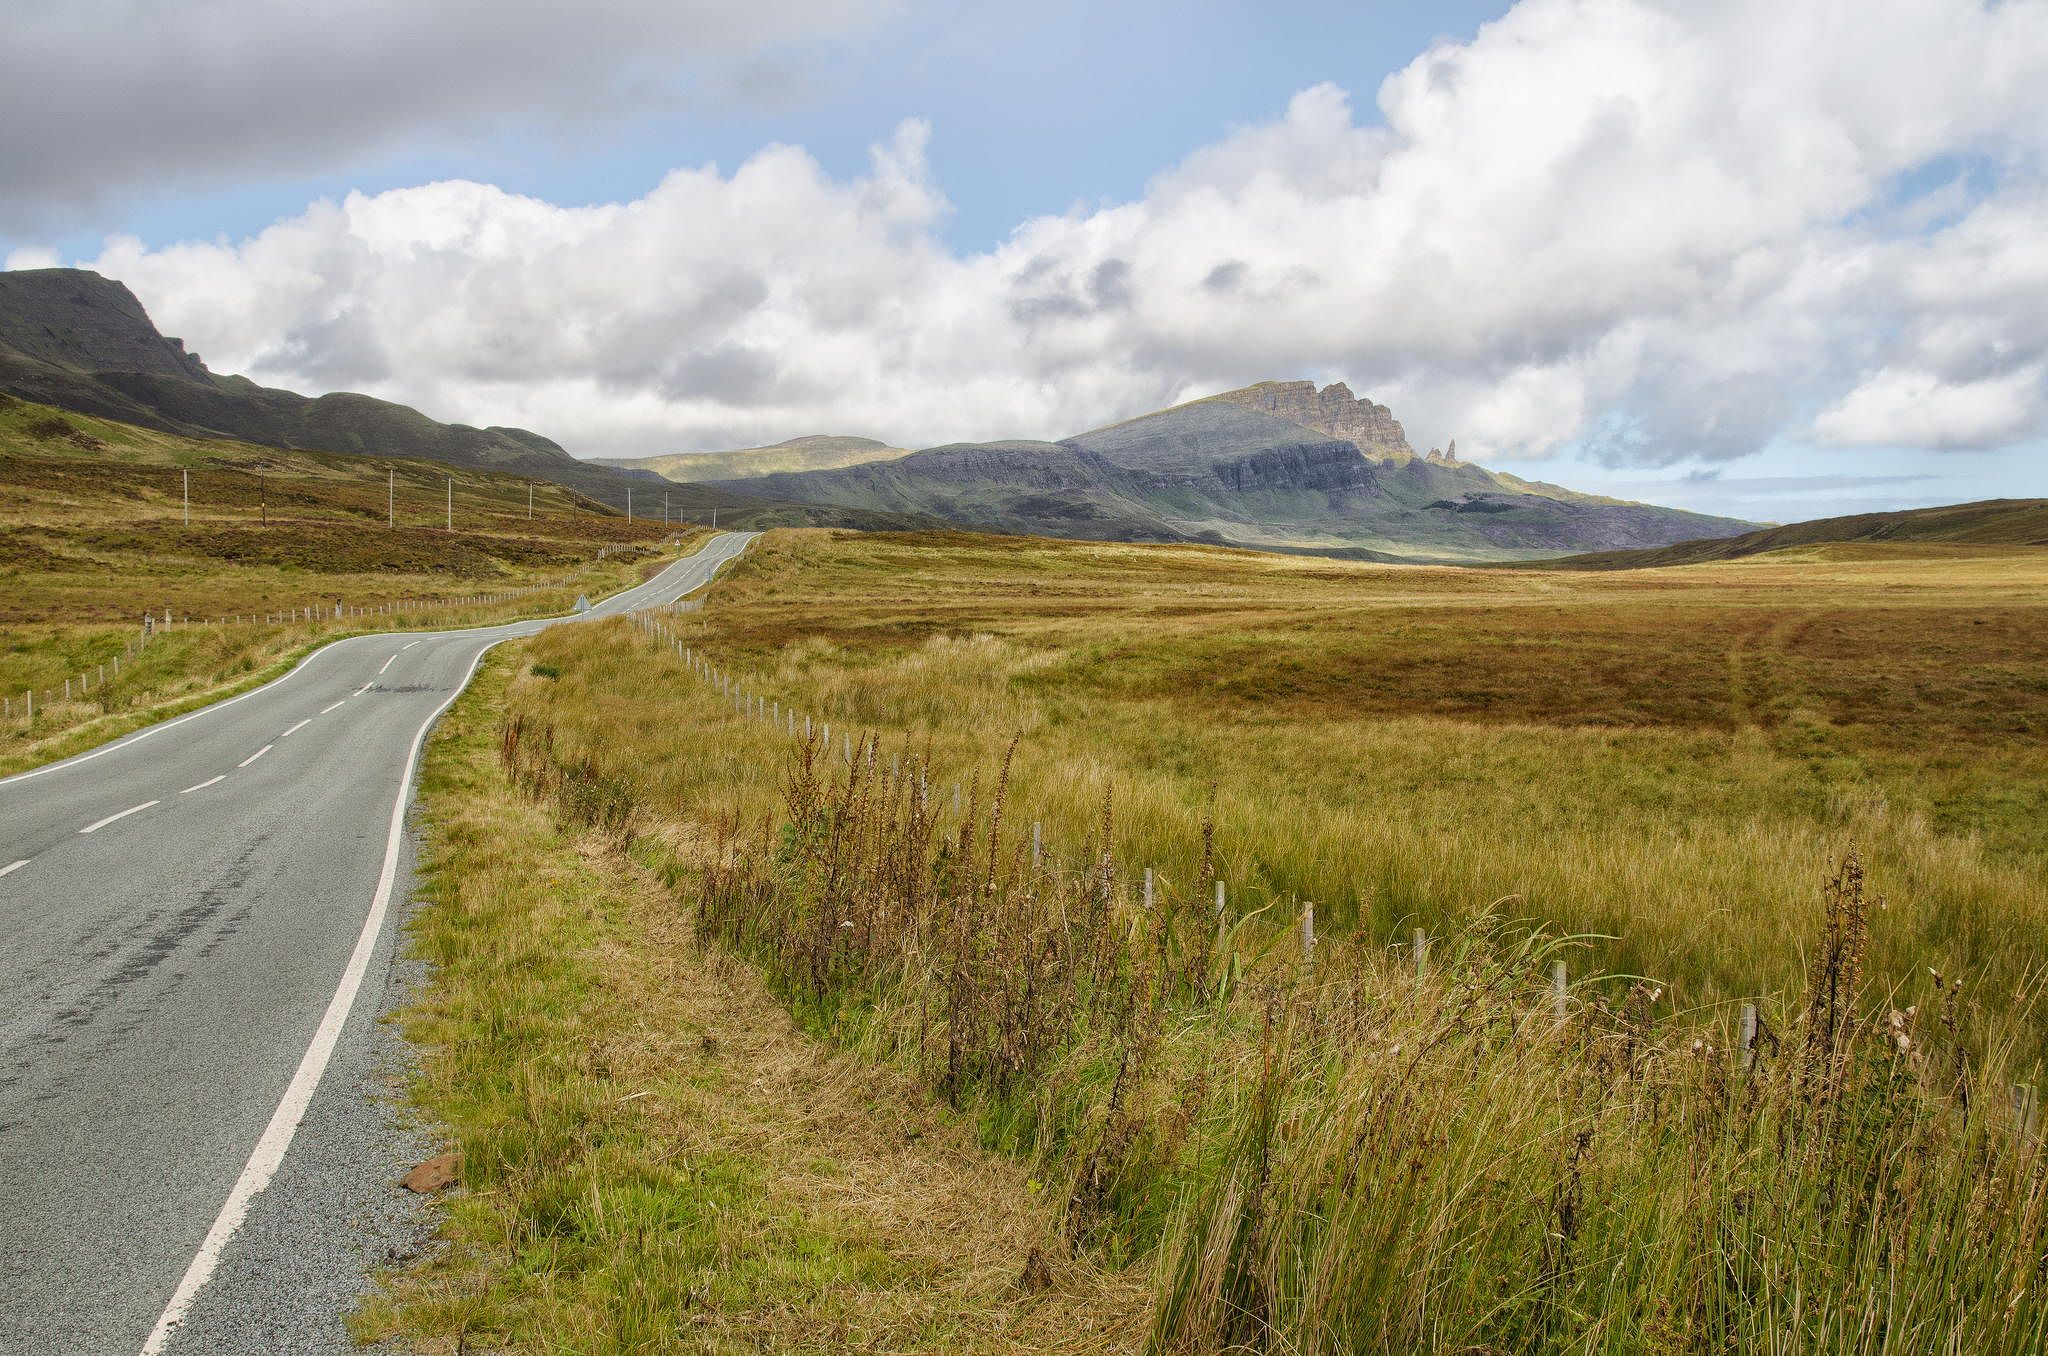 Road to The Old Man of Storr by Pablo Mandado on 500px